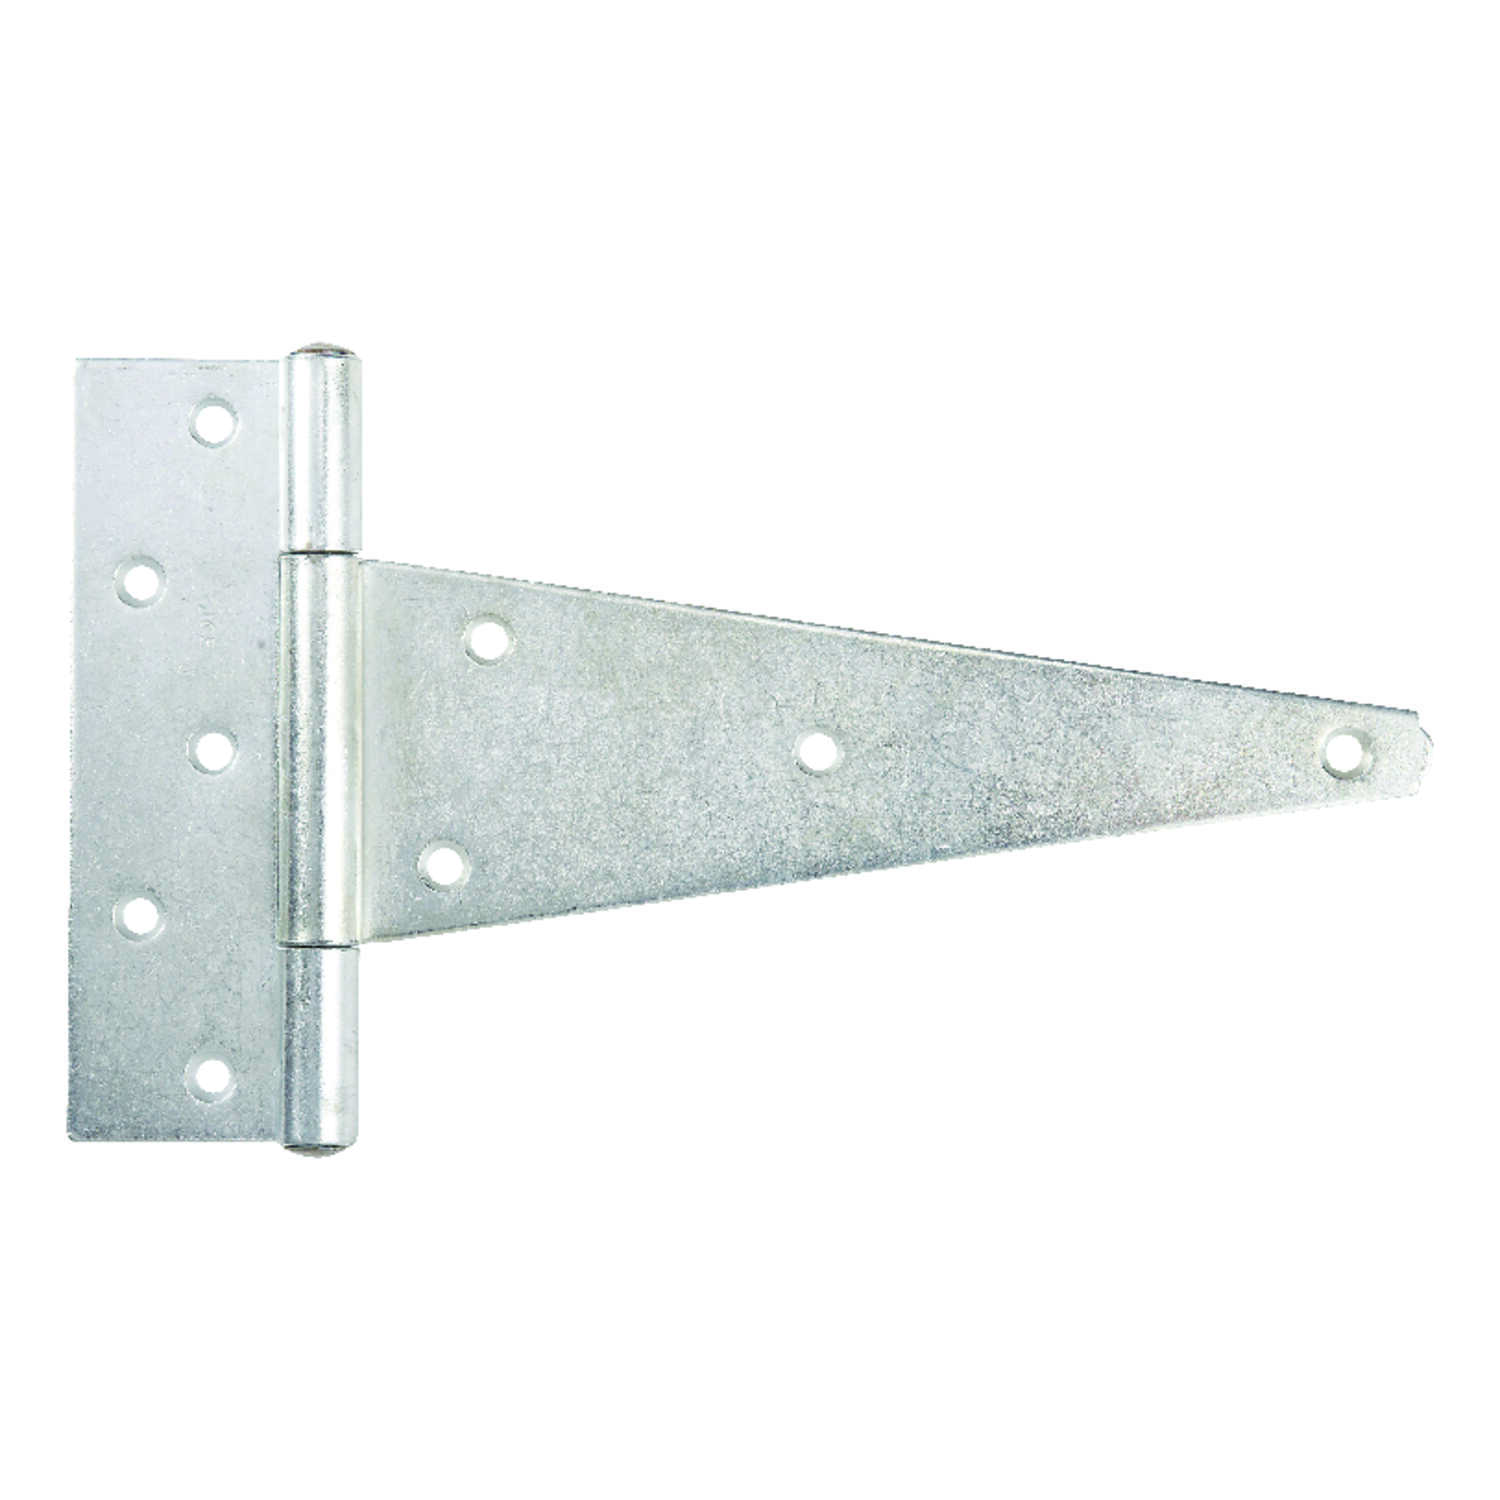 Ace  10 in. L Zinc-Plated  Steel  Heavy Duty T Hinge  1 pk